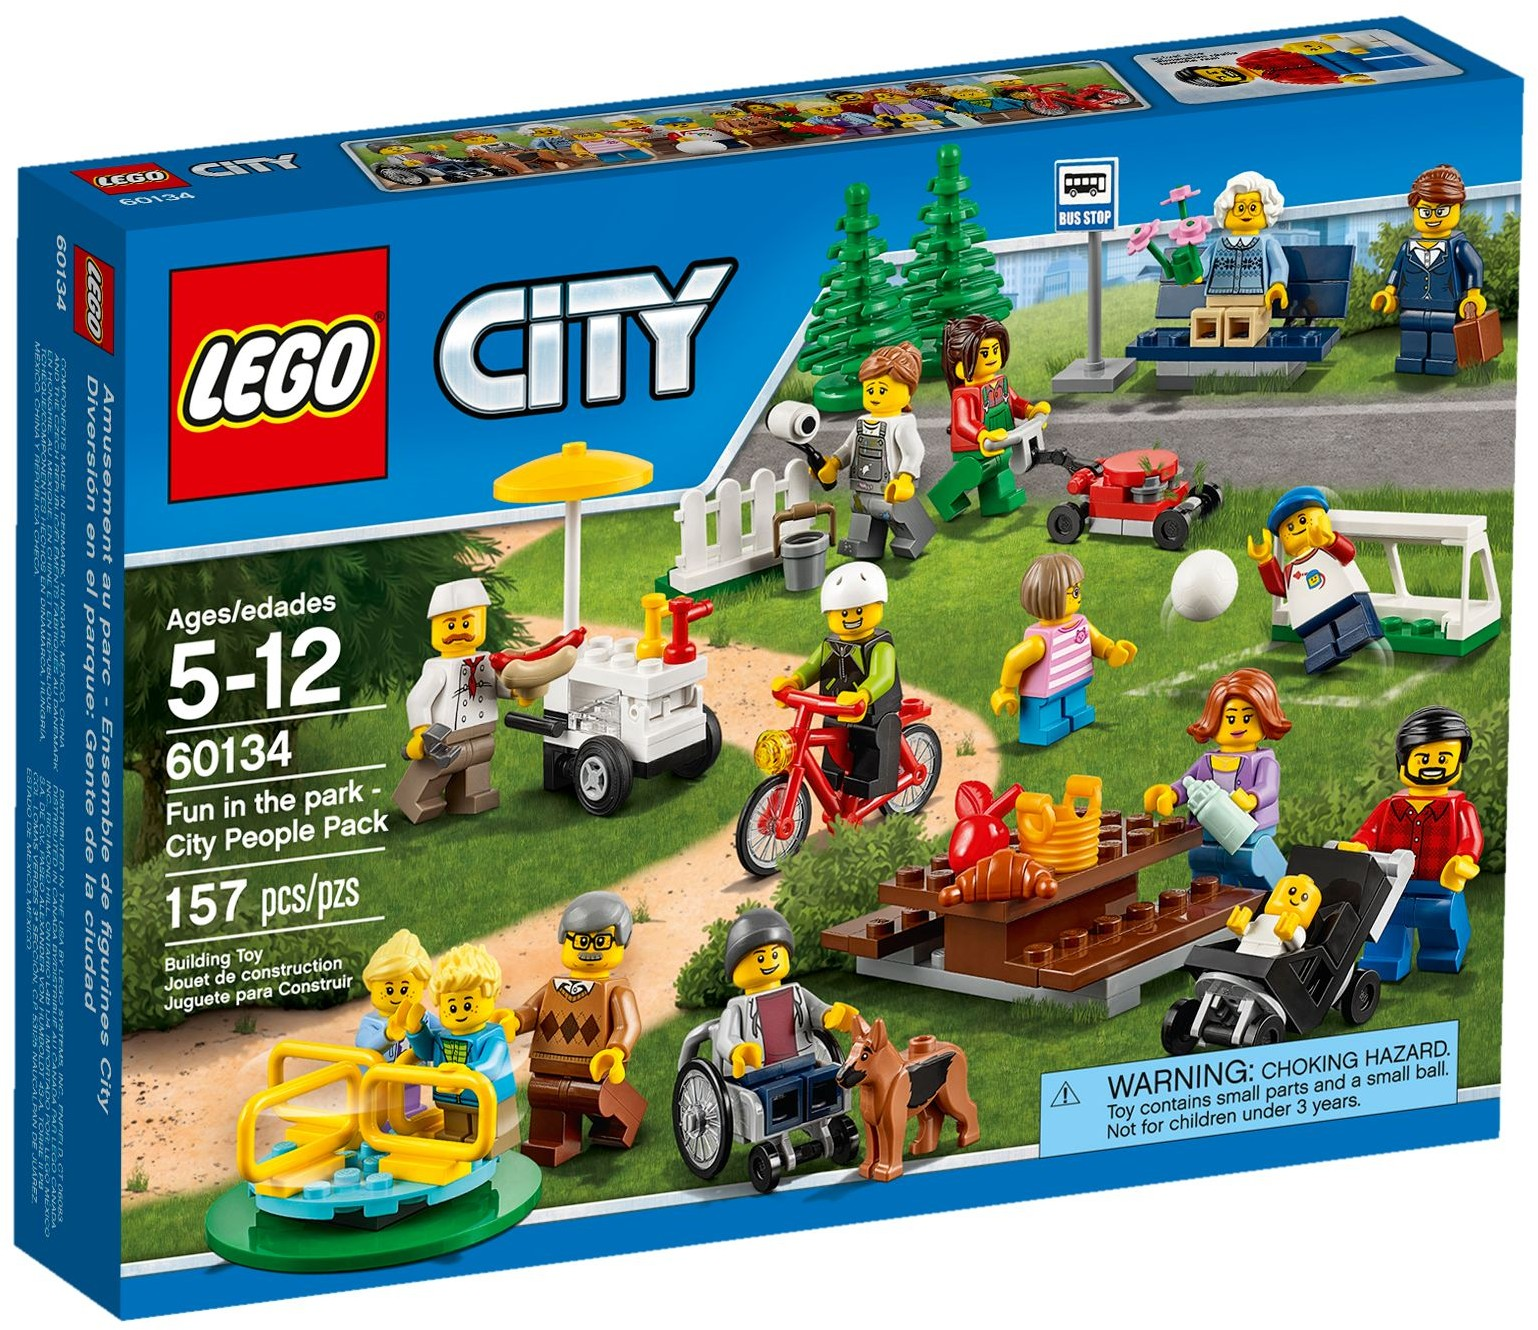 LEGO City Fun in the Park - City People Pack - 60134 - Photo 1